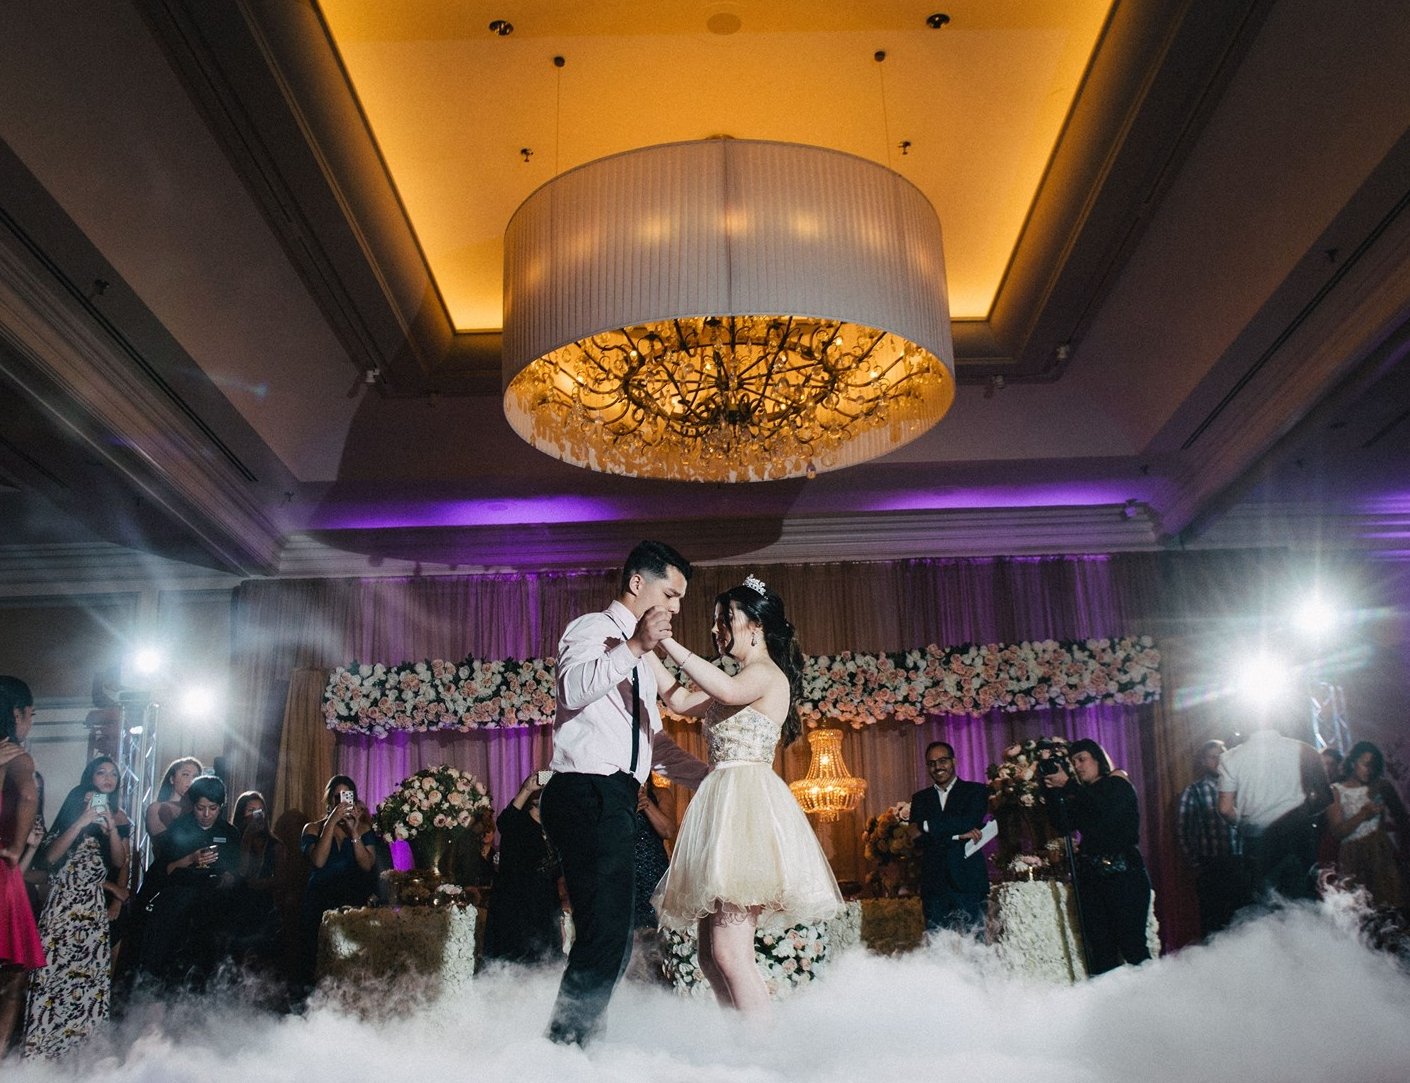 C HOREOGRAPHY  We help help turn your special dance even more memorable. Weddings, Sweet 16 and more.   Learn More →